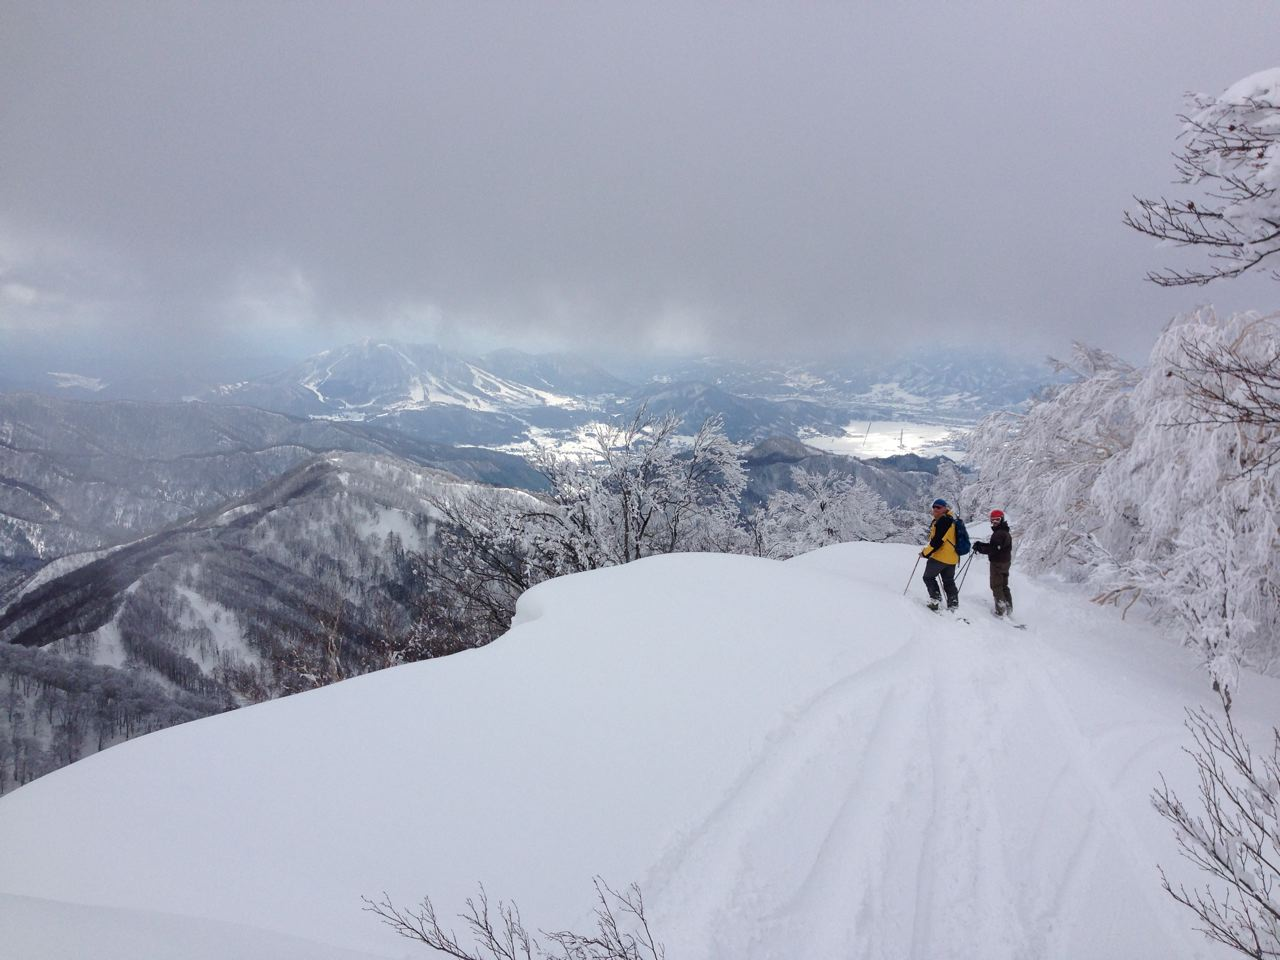 Clouds lifting in Nozawa to reveal some snow and sun